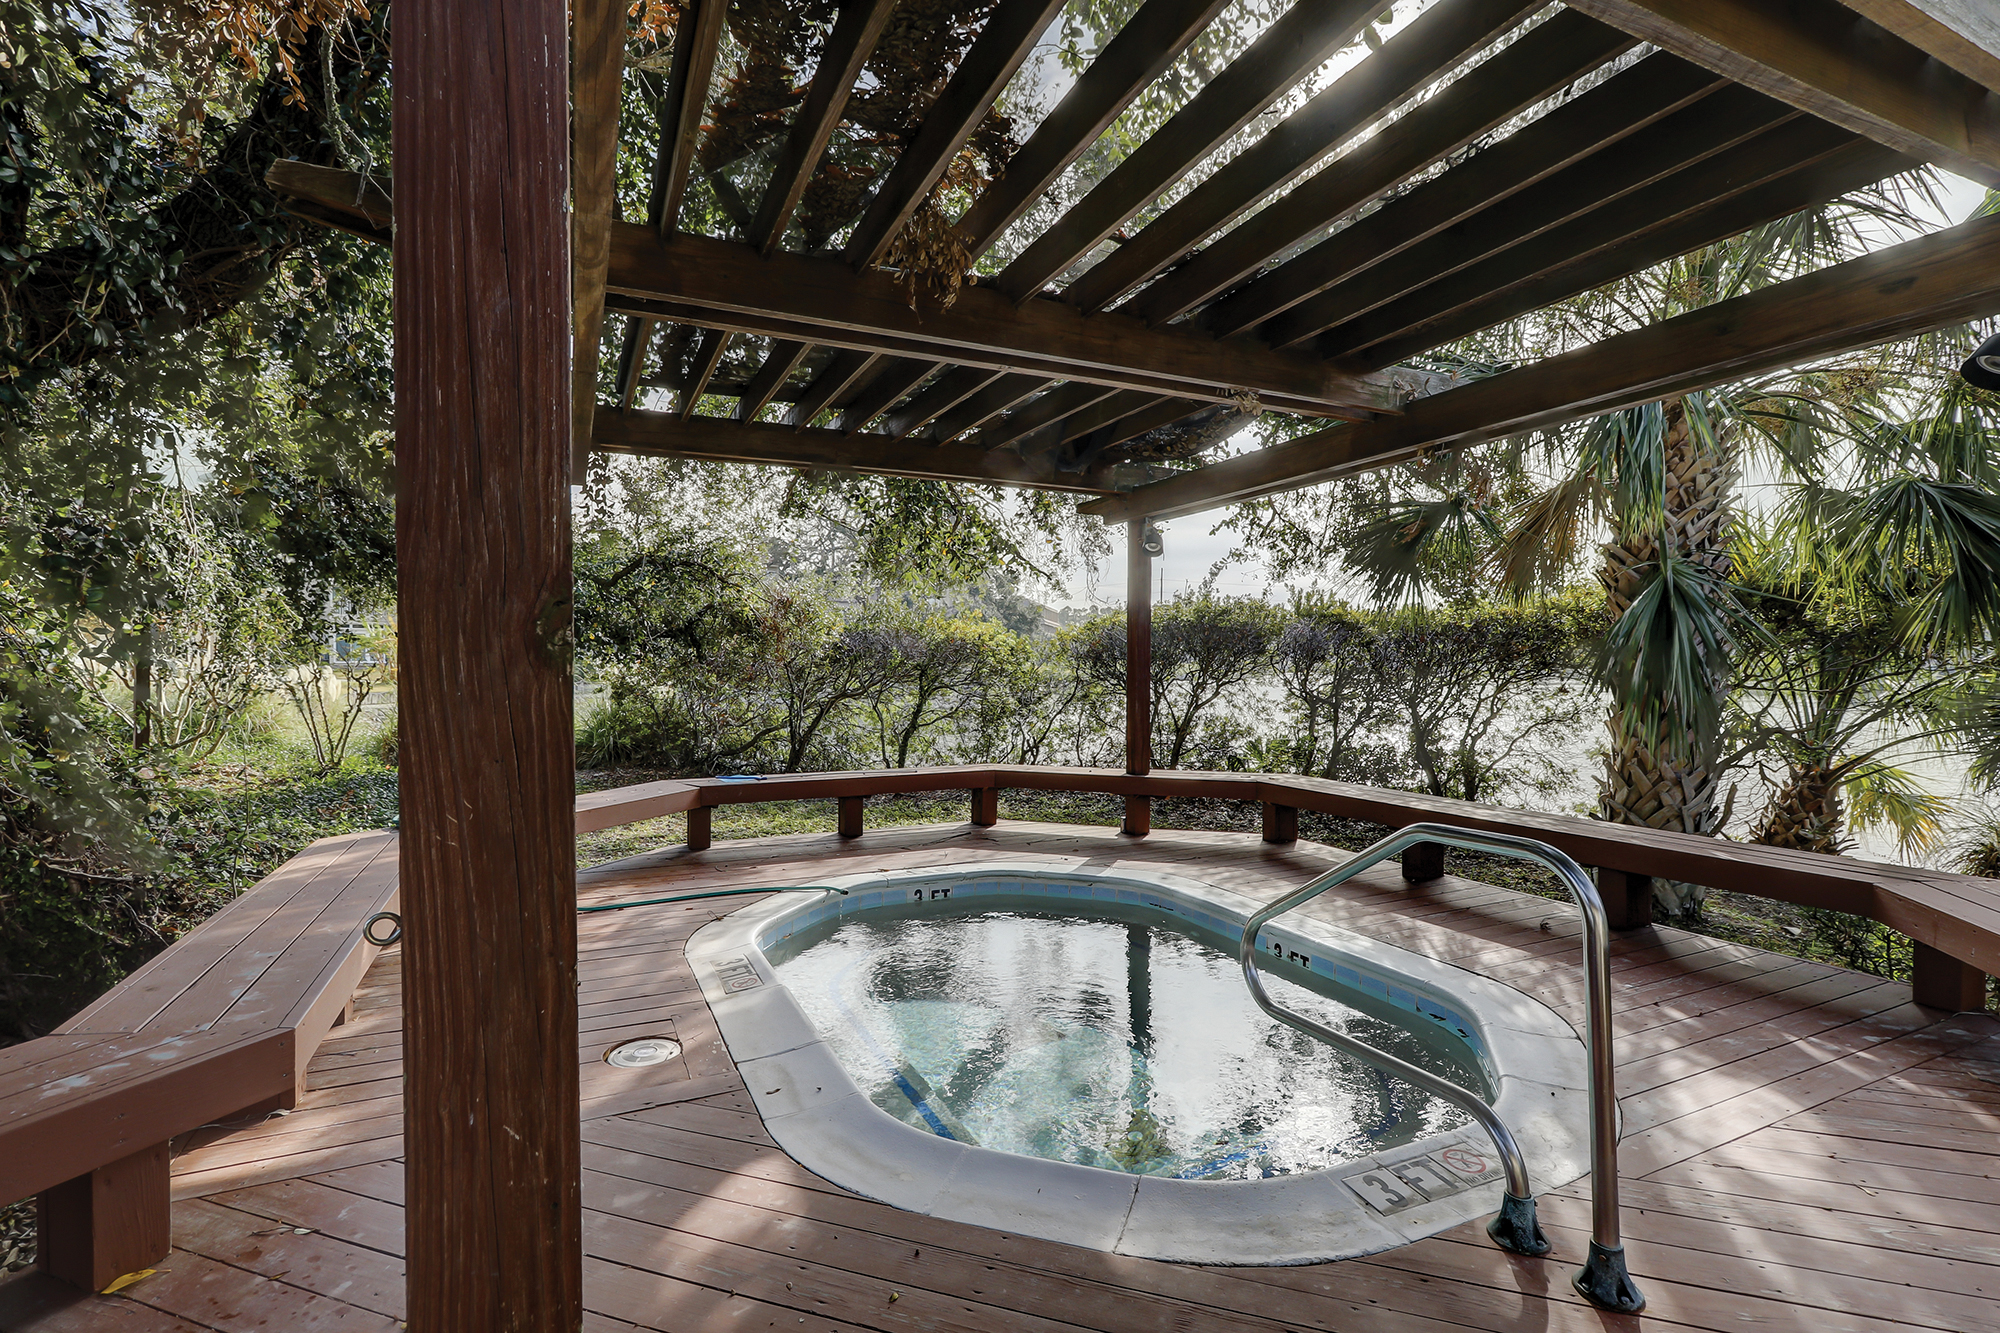 Enjoy a relaxing dip in the spa after a day of golf and beach. Hilton Head Island